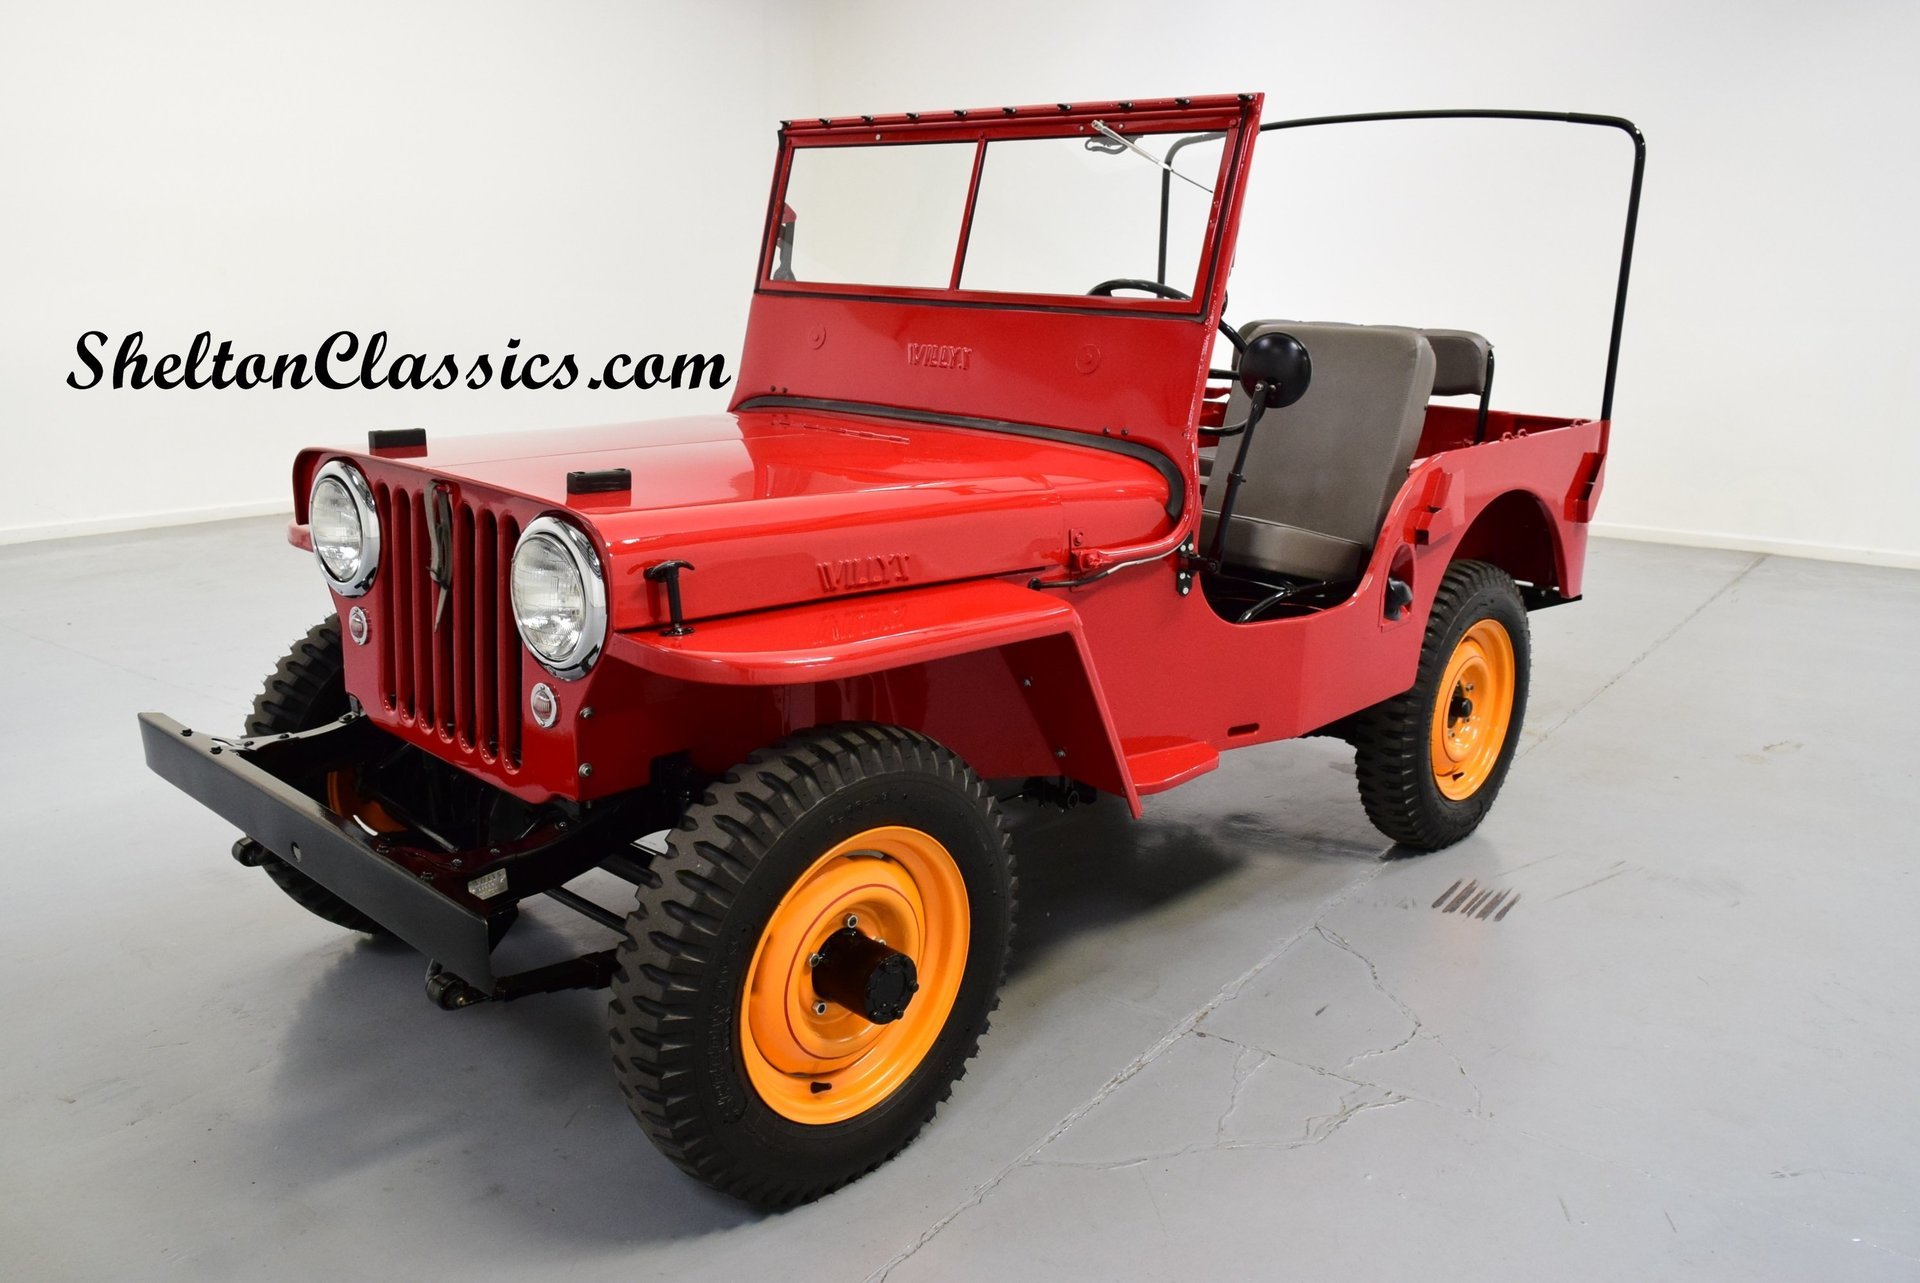 1946 willys cj2a jeep 4x4 for sale 74458 mcg. Black Bedroom Furniture Sets. Home Design Ideas